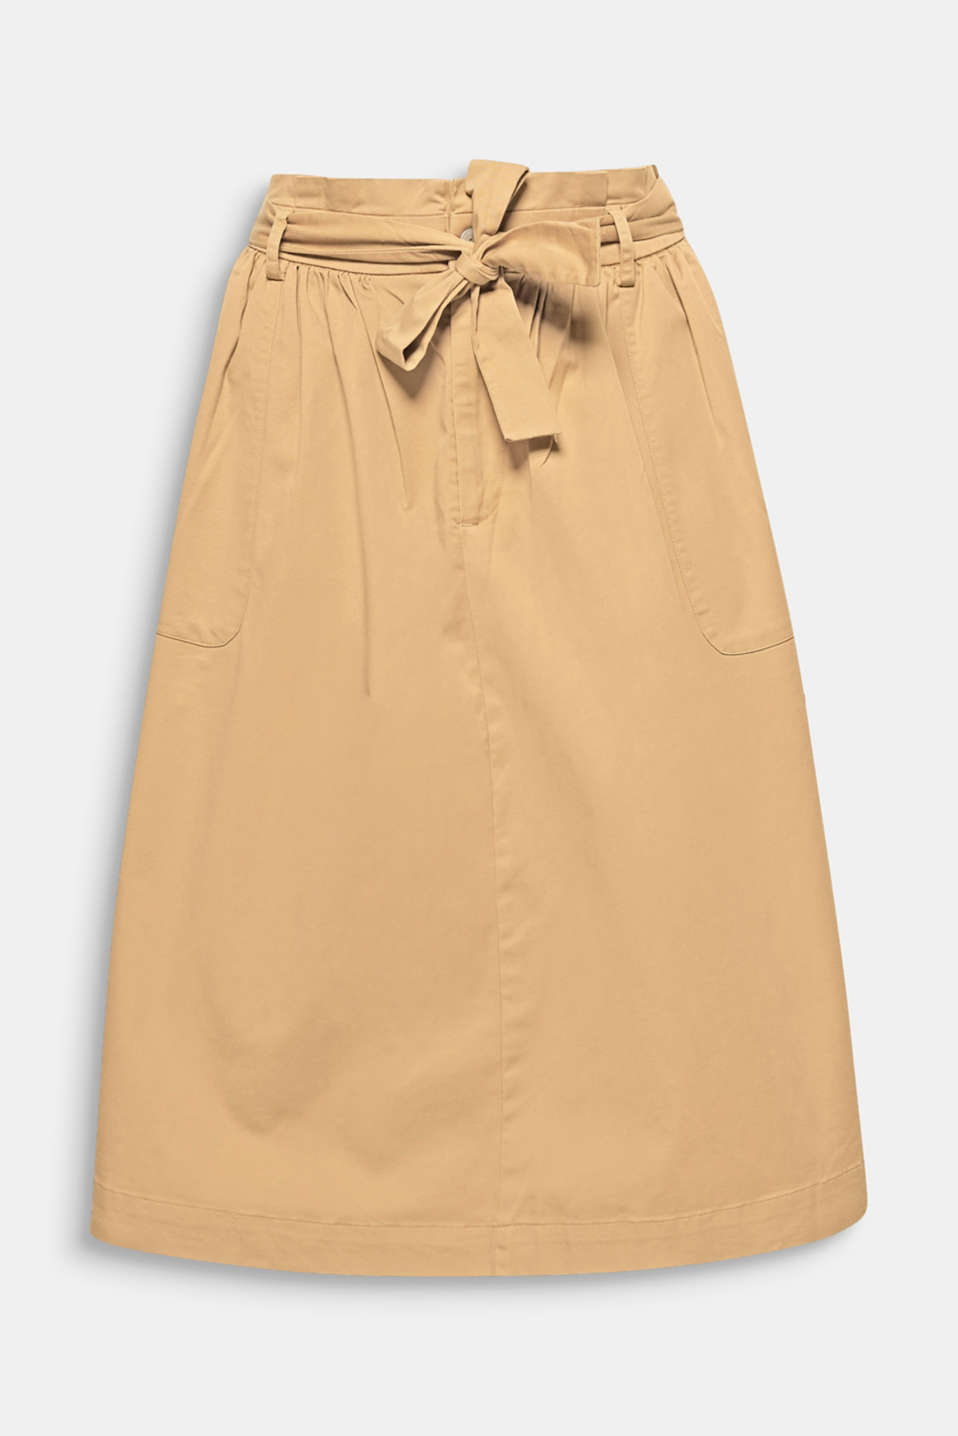 Everyday favourite with a super fashionable twist:  this A-line skirt wows with snug twill fabric and a pleated paperbag waistband.